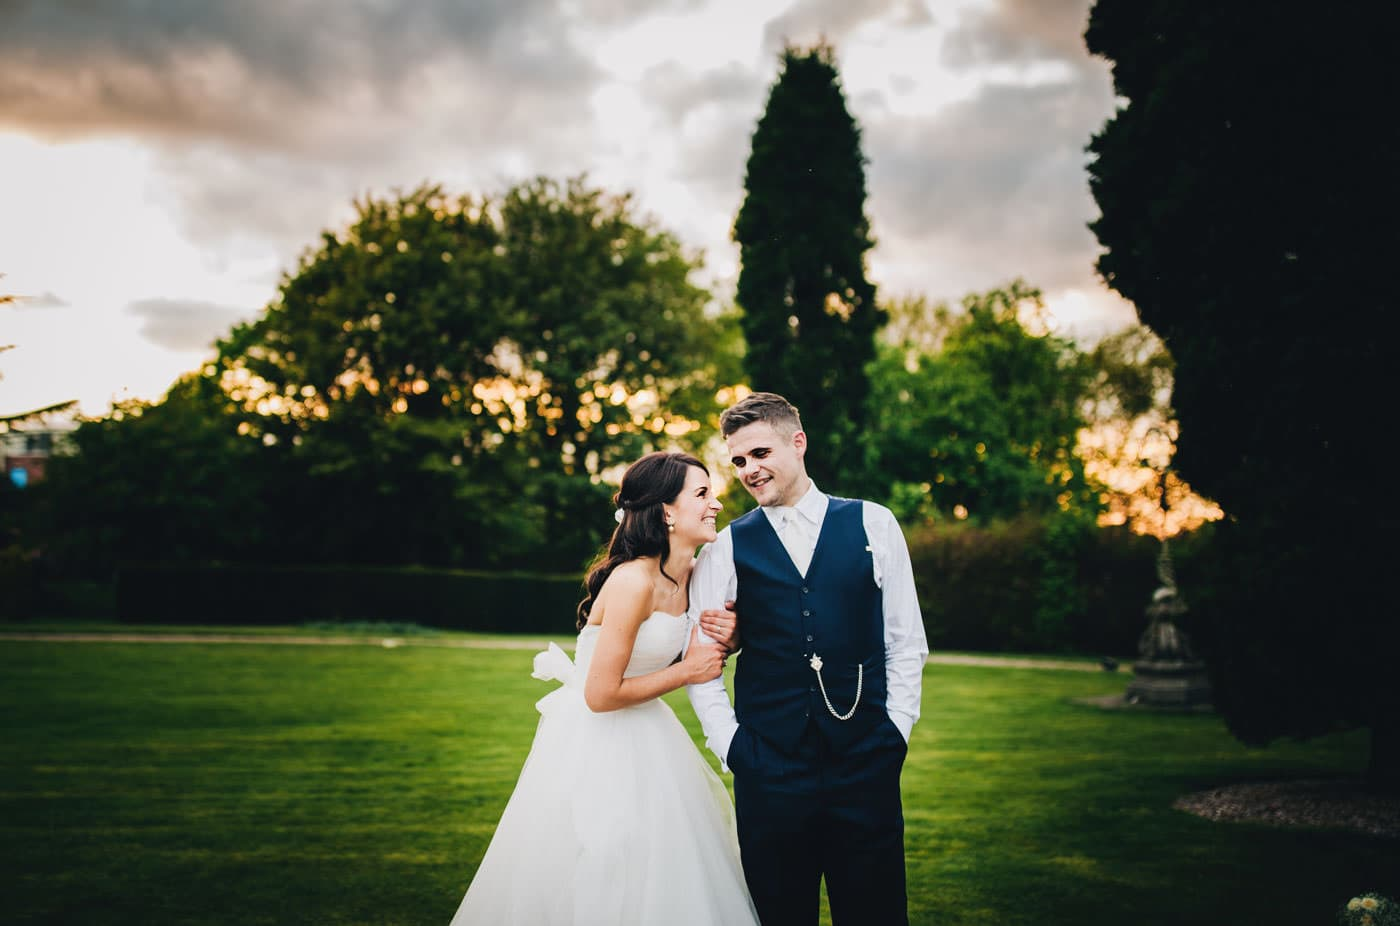 Crewe Hall wedding pictures - bride and groom